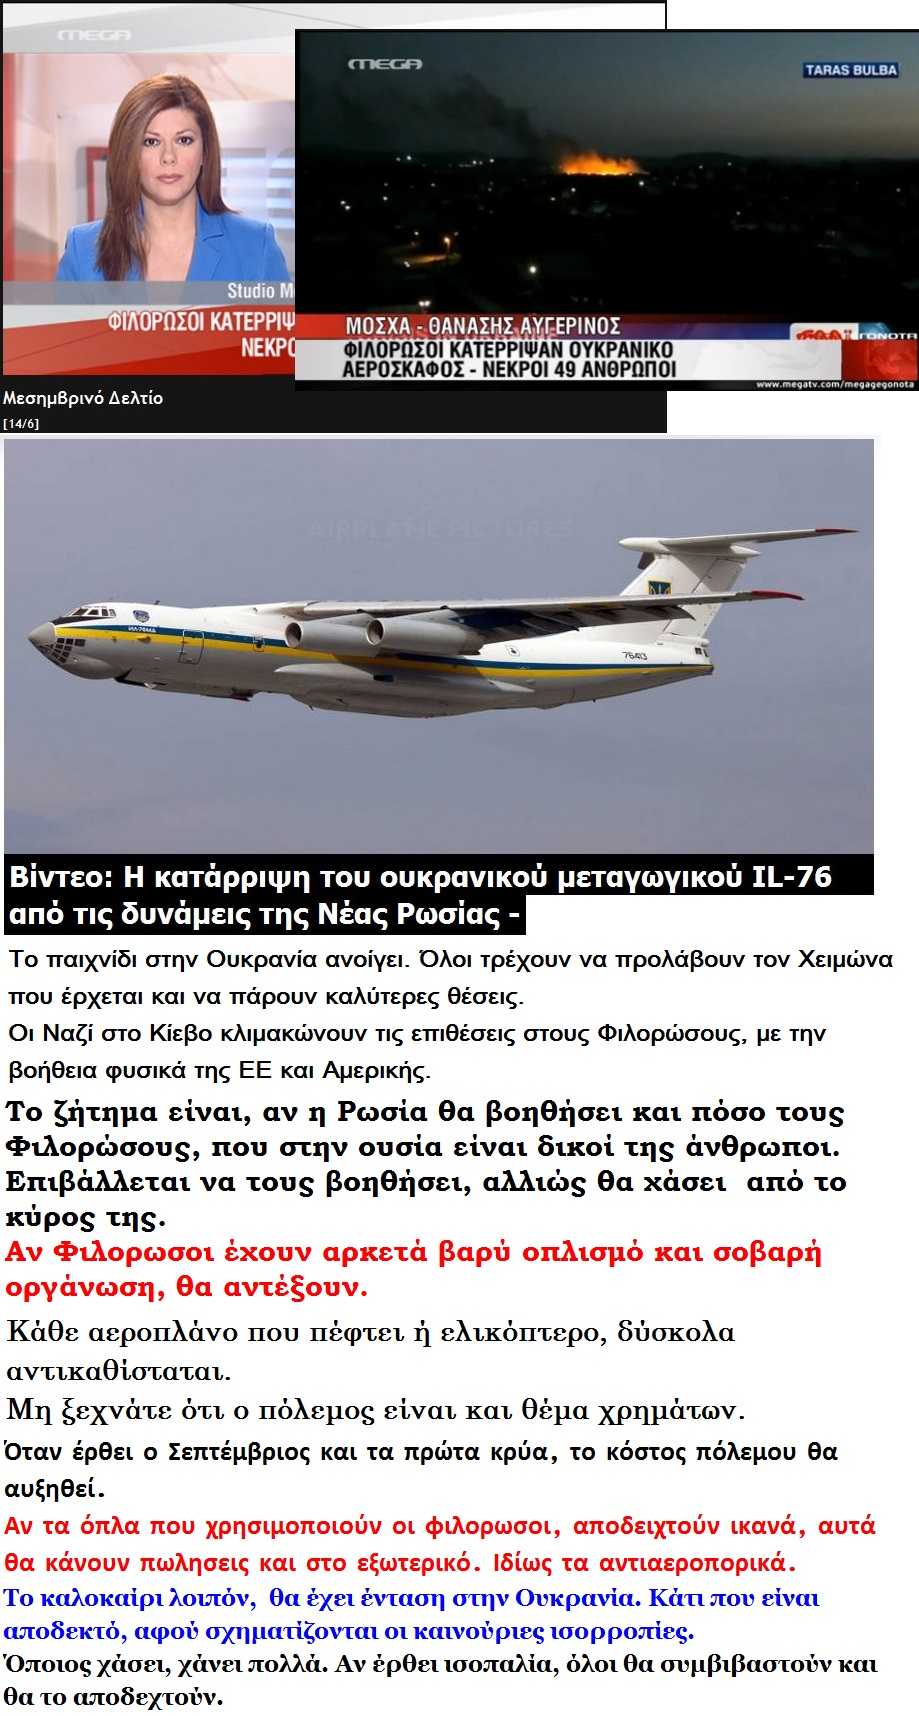 UKRAINE WAR AIRPLANE 01 150614